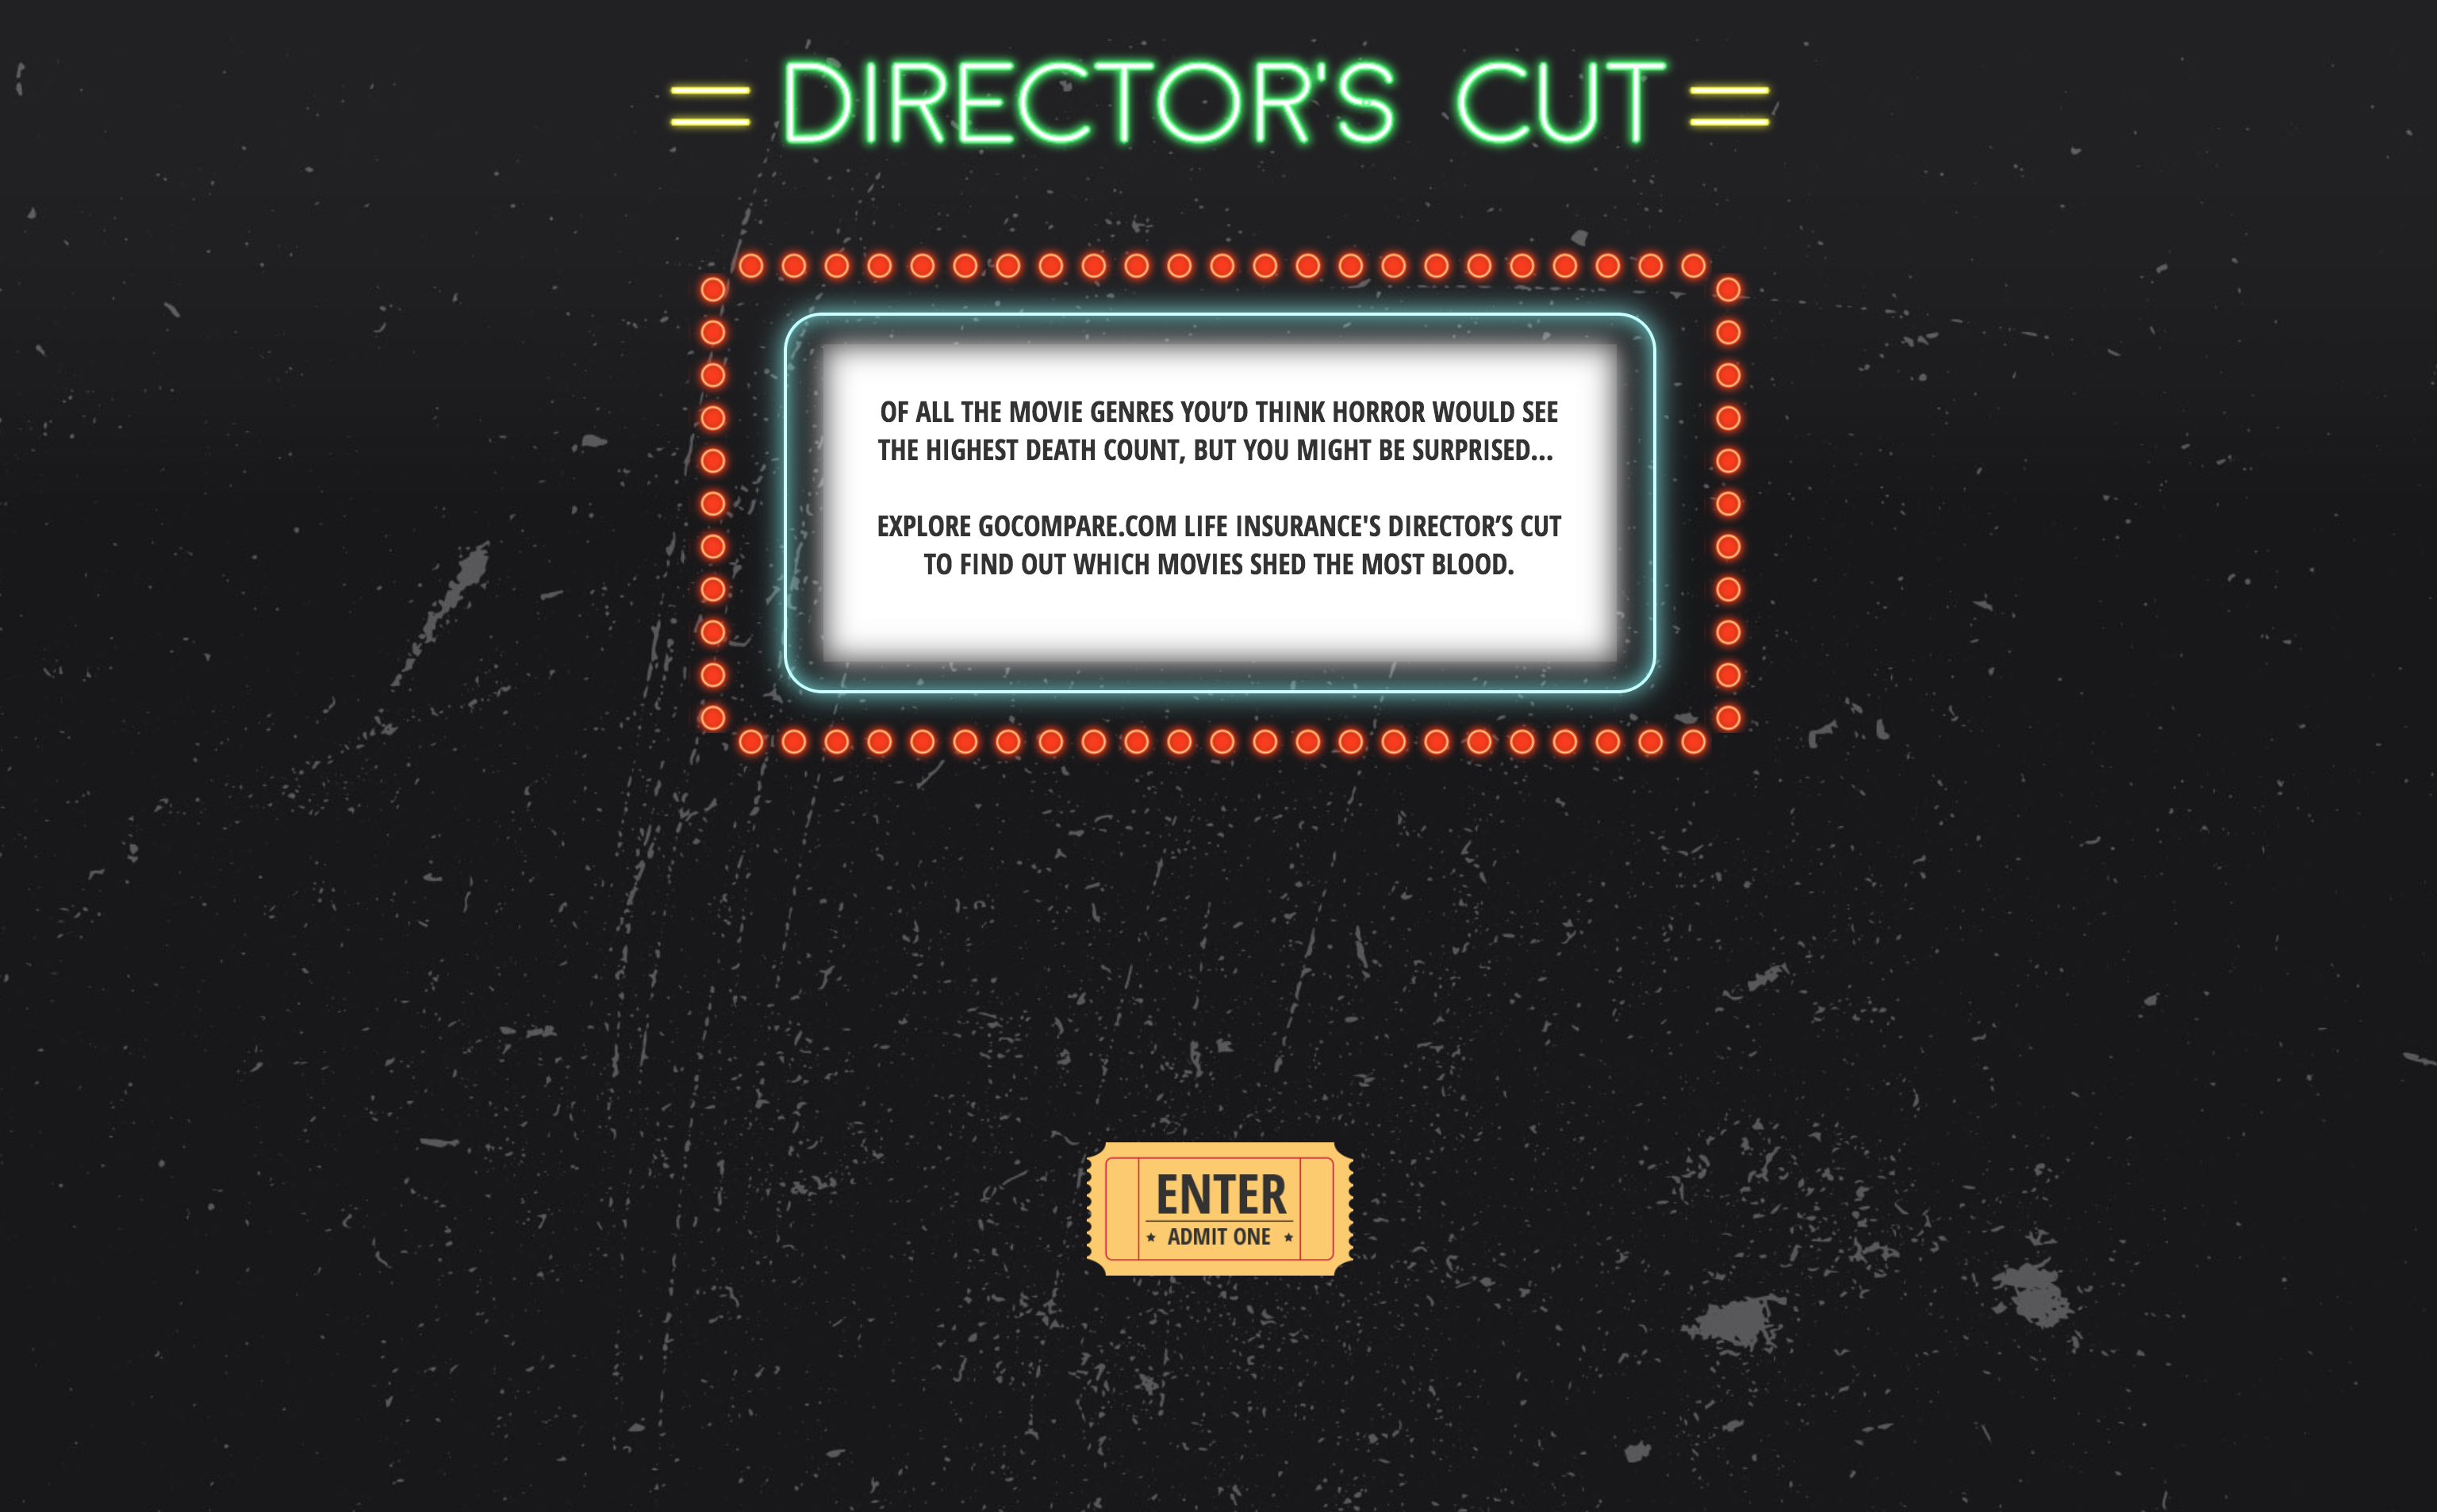 Director's Cut - GoCompare